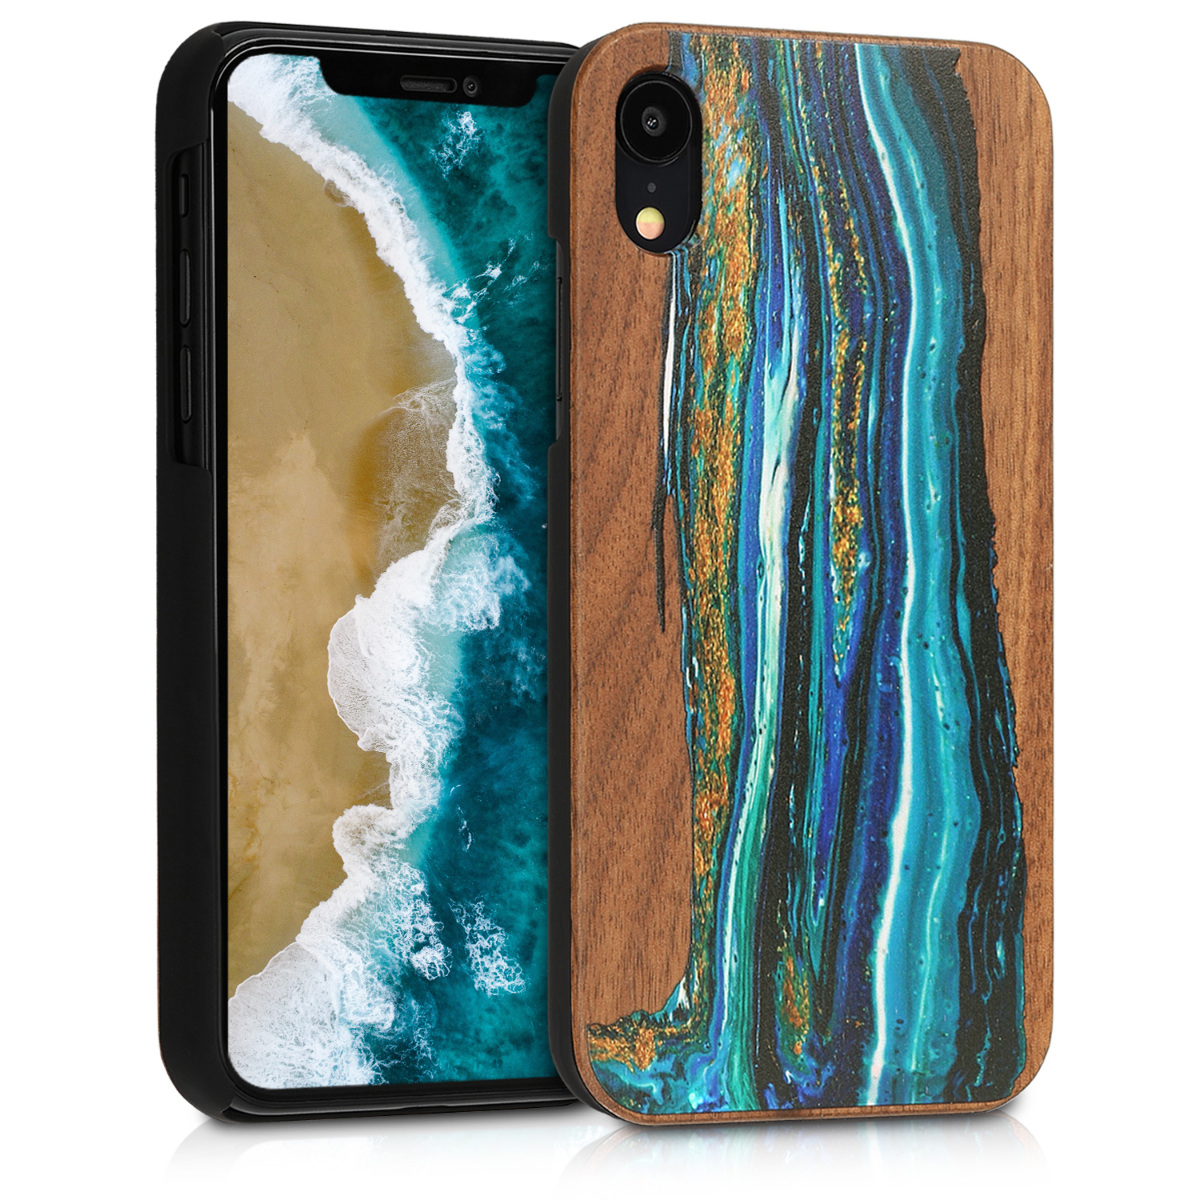 KW Ξύλινη Θήκη iPhone XR - Brown Blue Waves (46660.01)